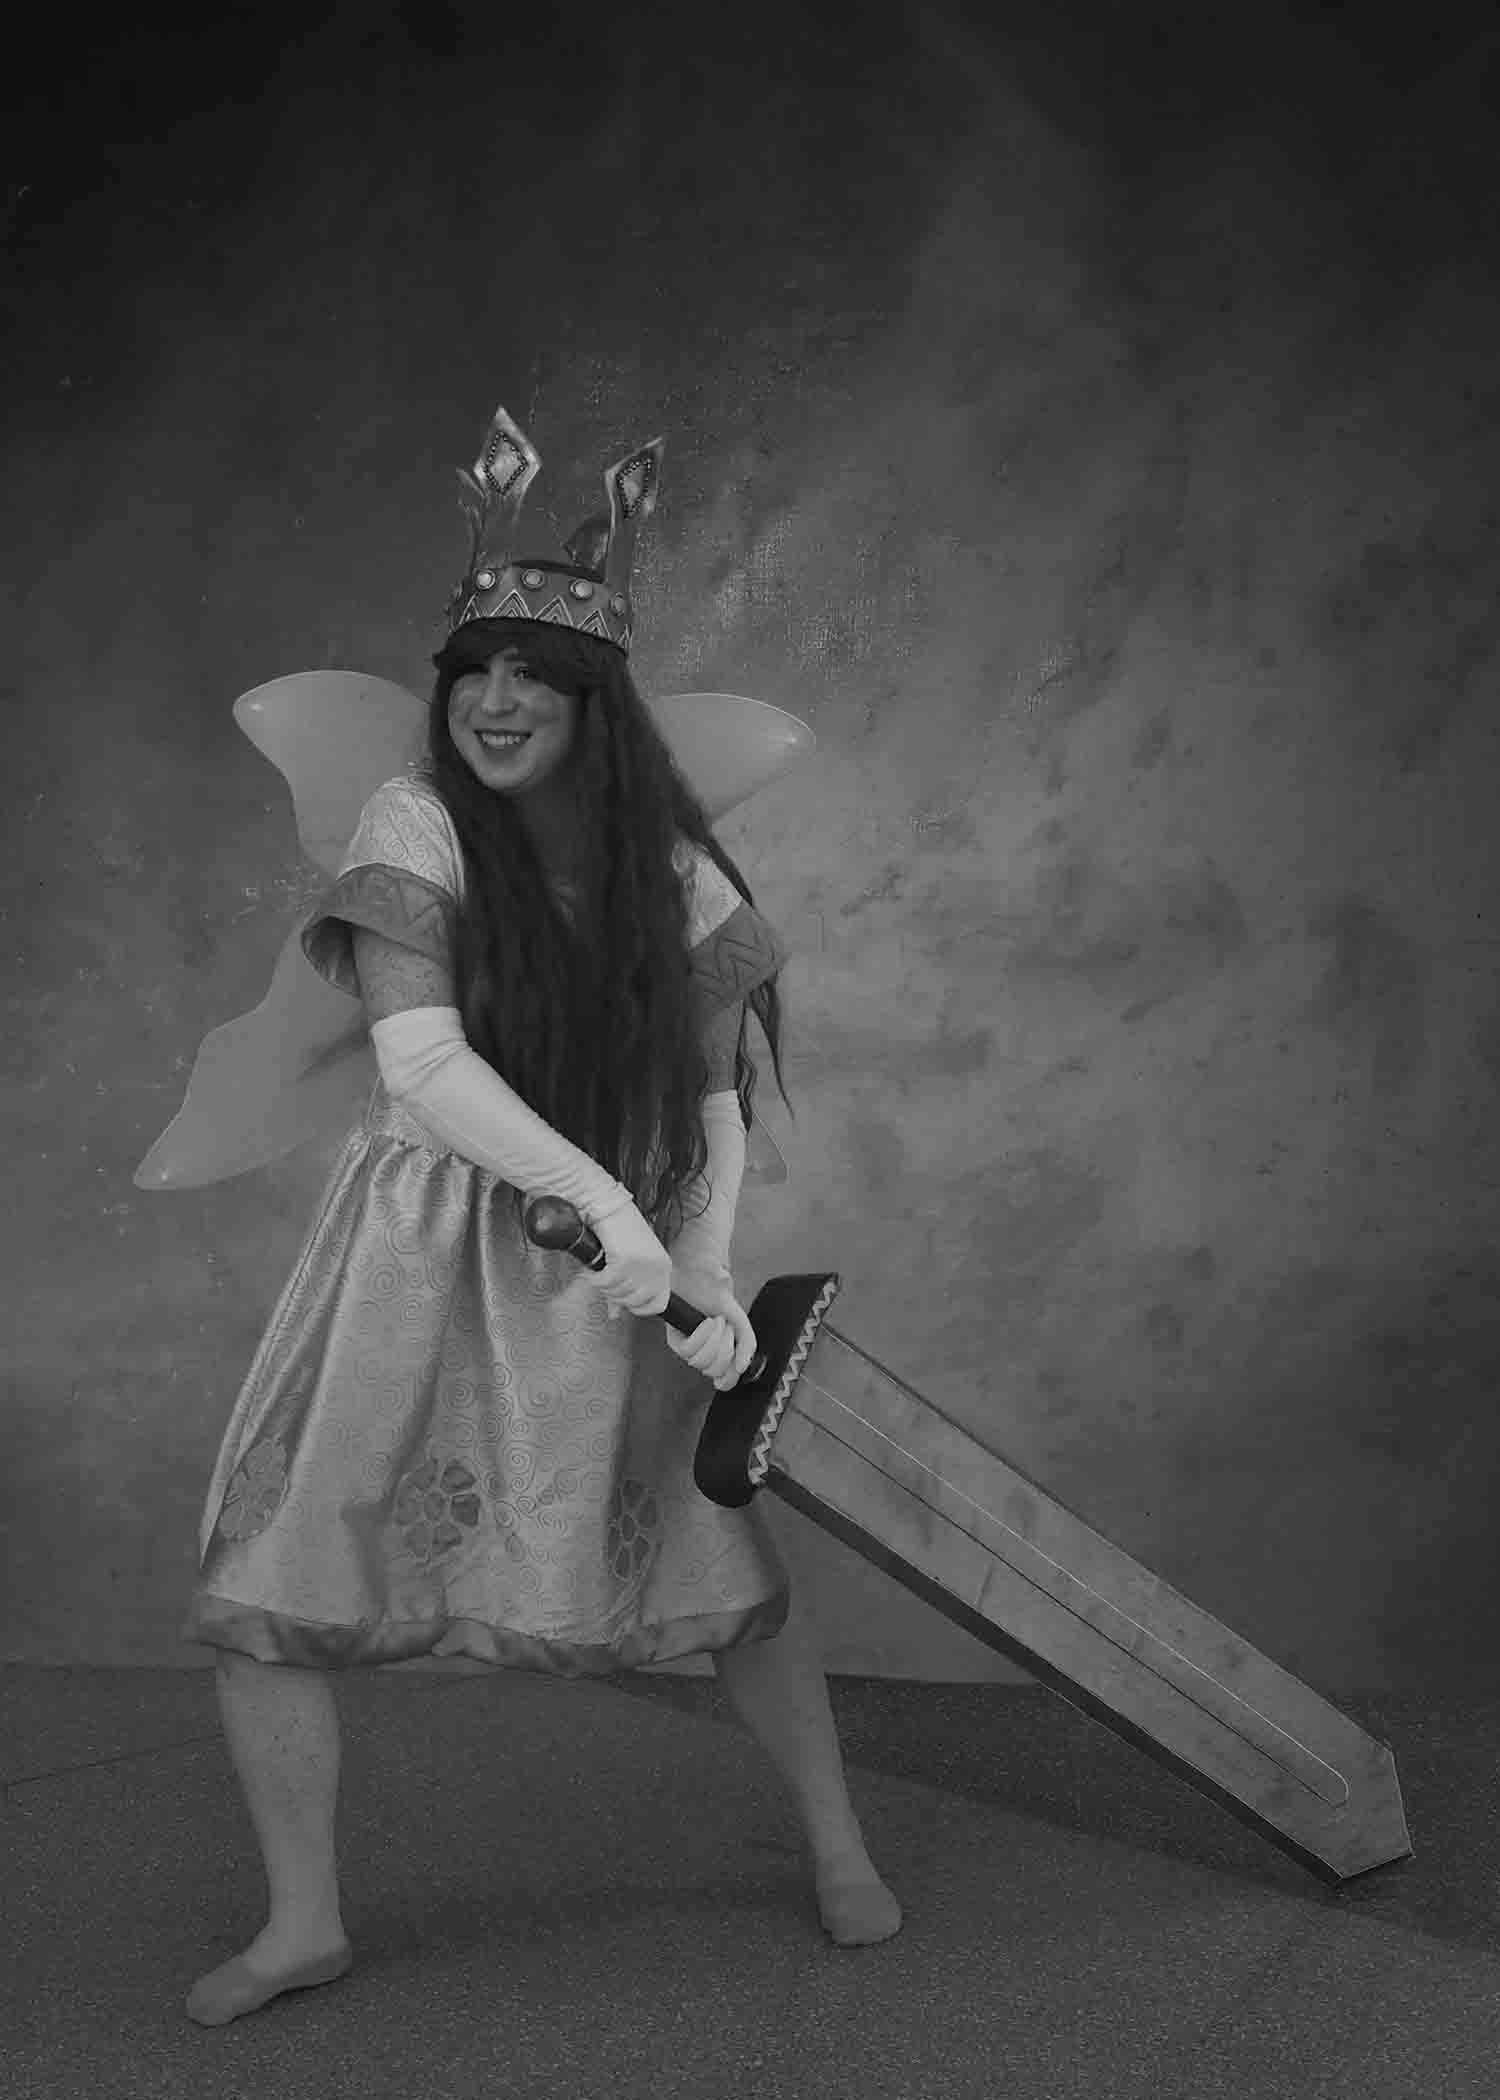 Child of Light - Inspired by the